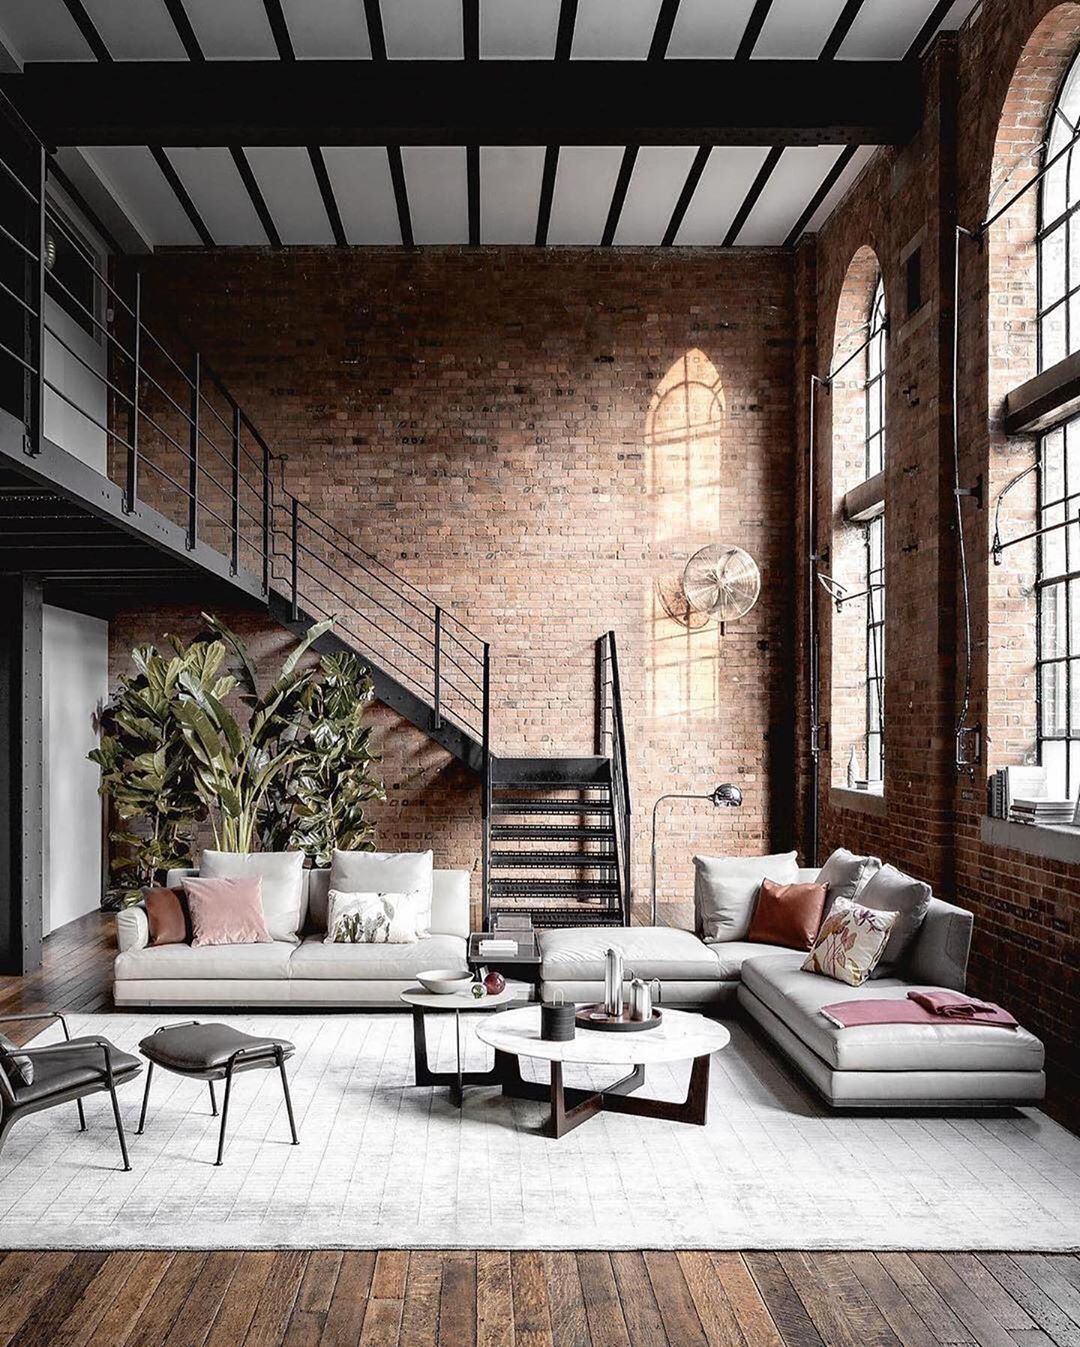 Great Ideas for Beginners in Living Room Decoration 2019 - Page 31 of 39 - My Blog -   12 living room loft home decor ideas